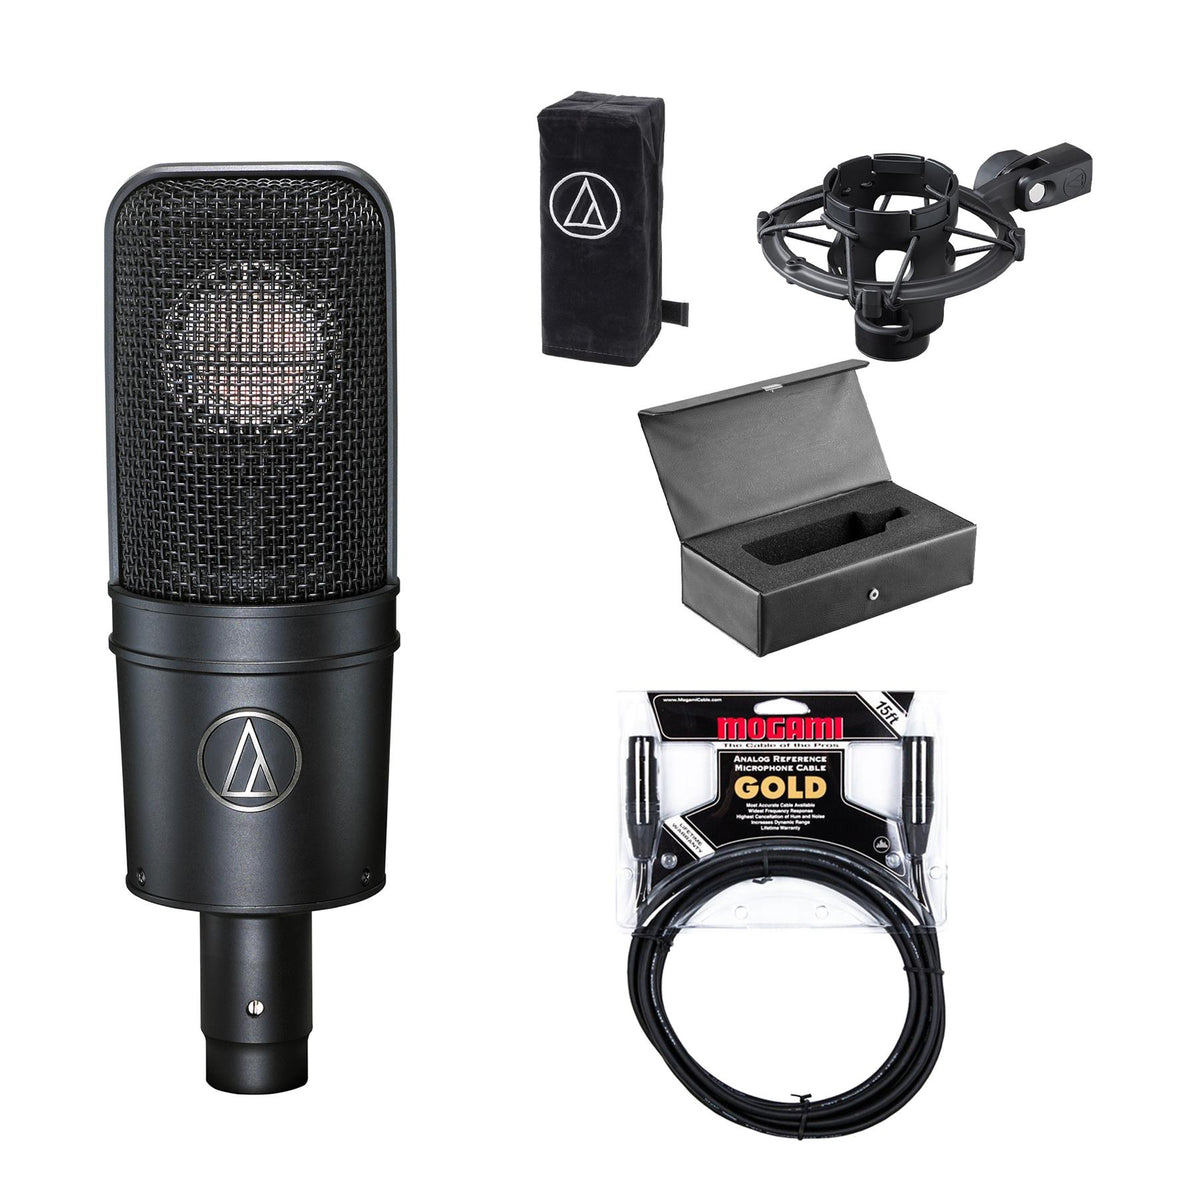 Audio-Technica AT4040 Microphone Bundle with 15ft Mogami Gold Studio XLR Cable